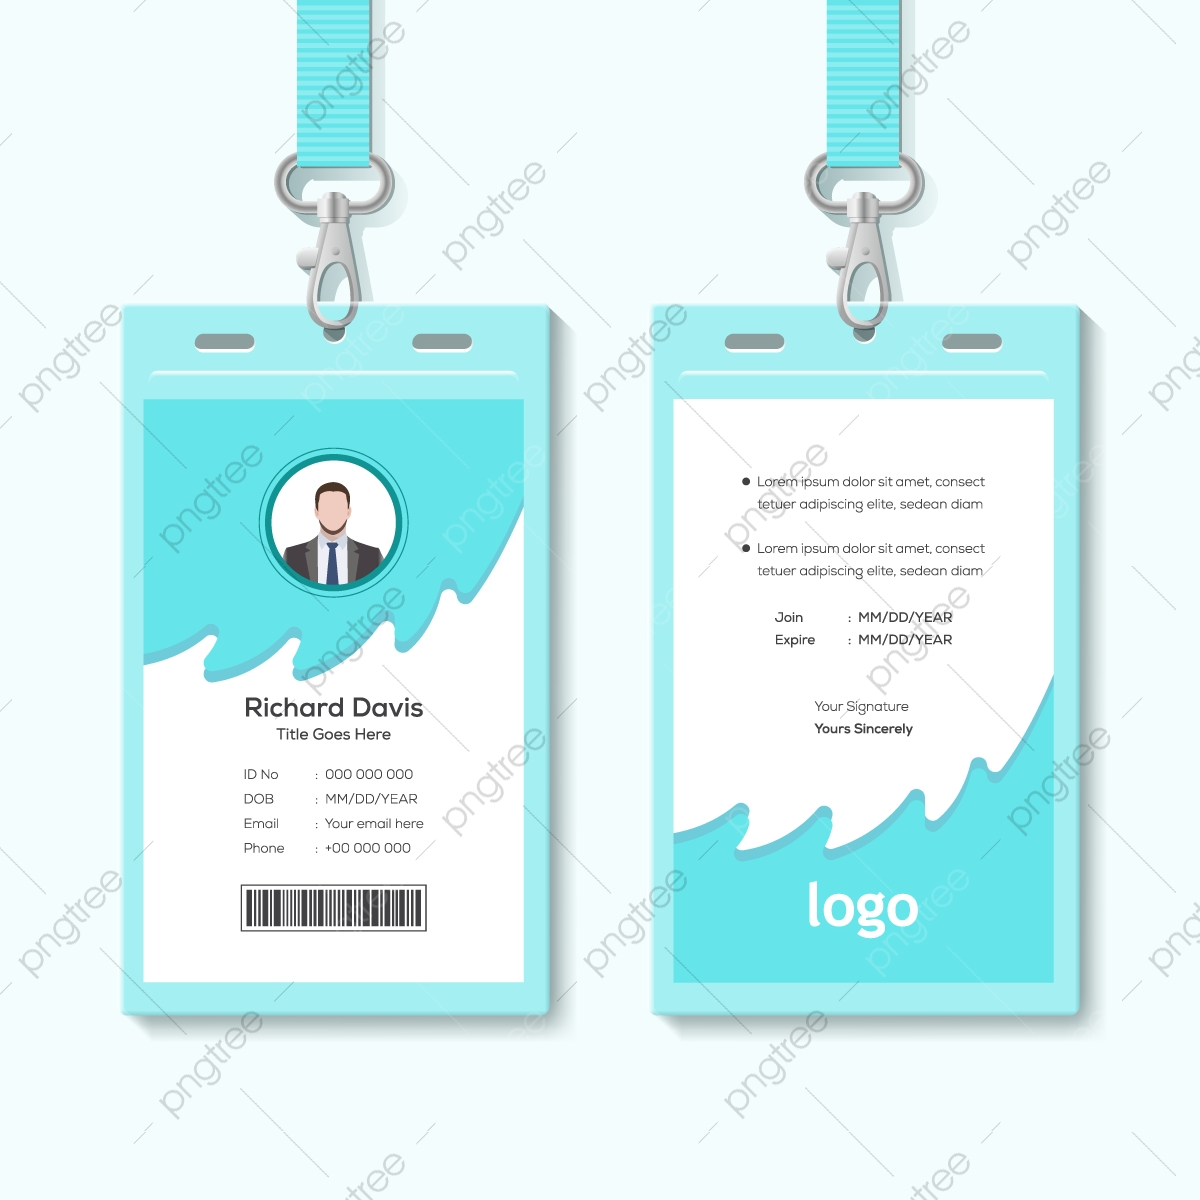 Abstract Template Staff Or Employee Identification Card Vector Illustrations Or Id Card Template Download On Pngtree